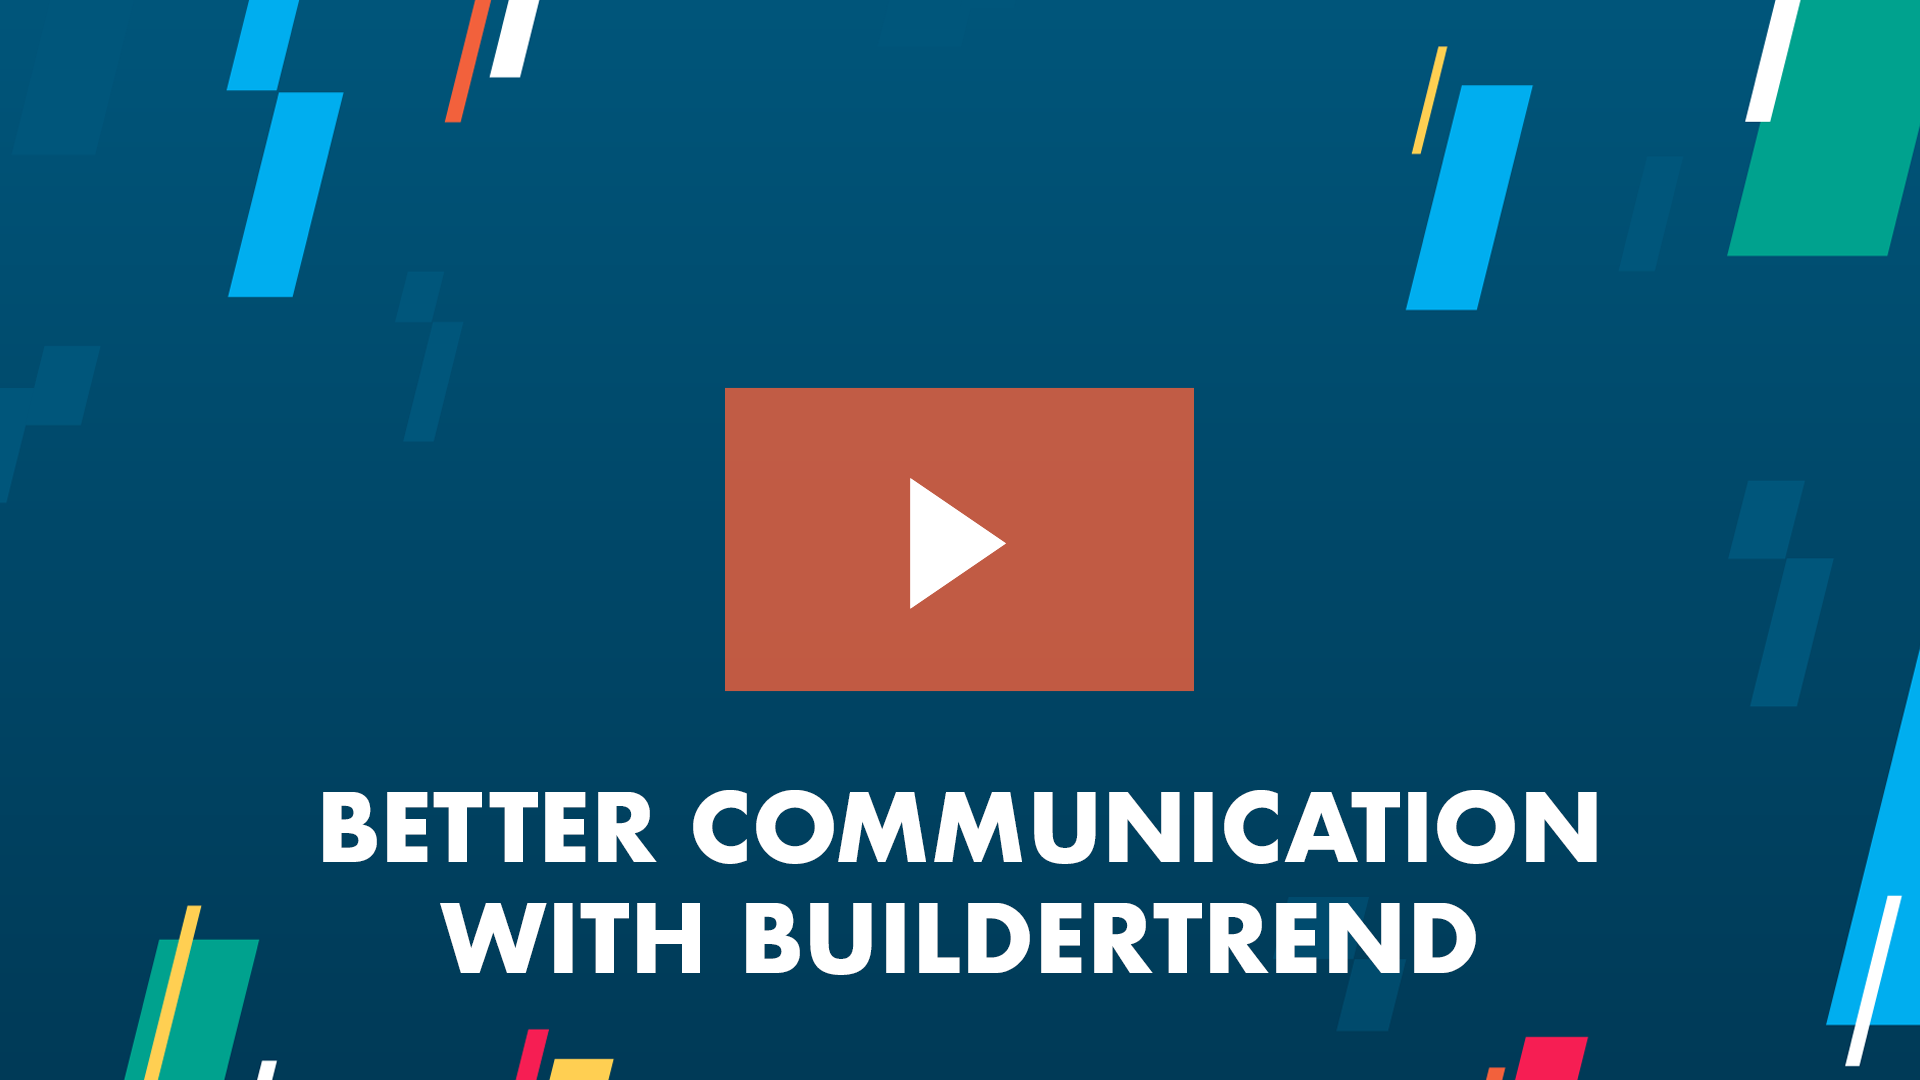 Better communication with Buildertrend